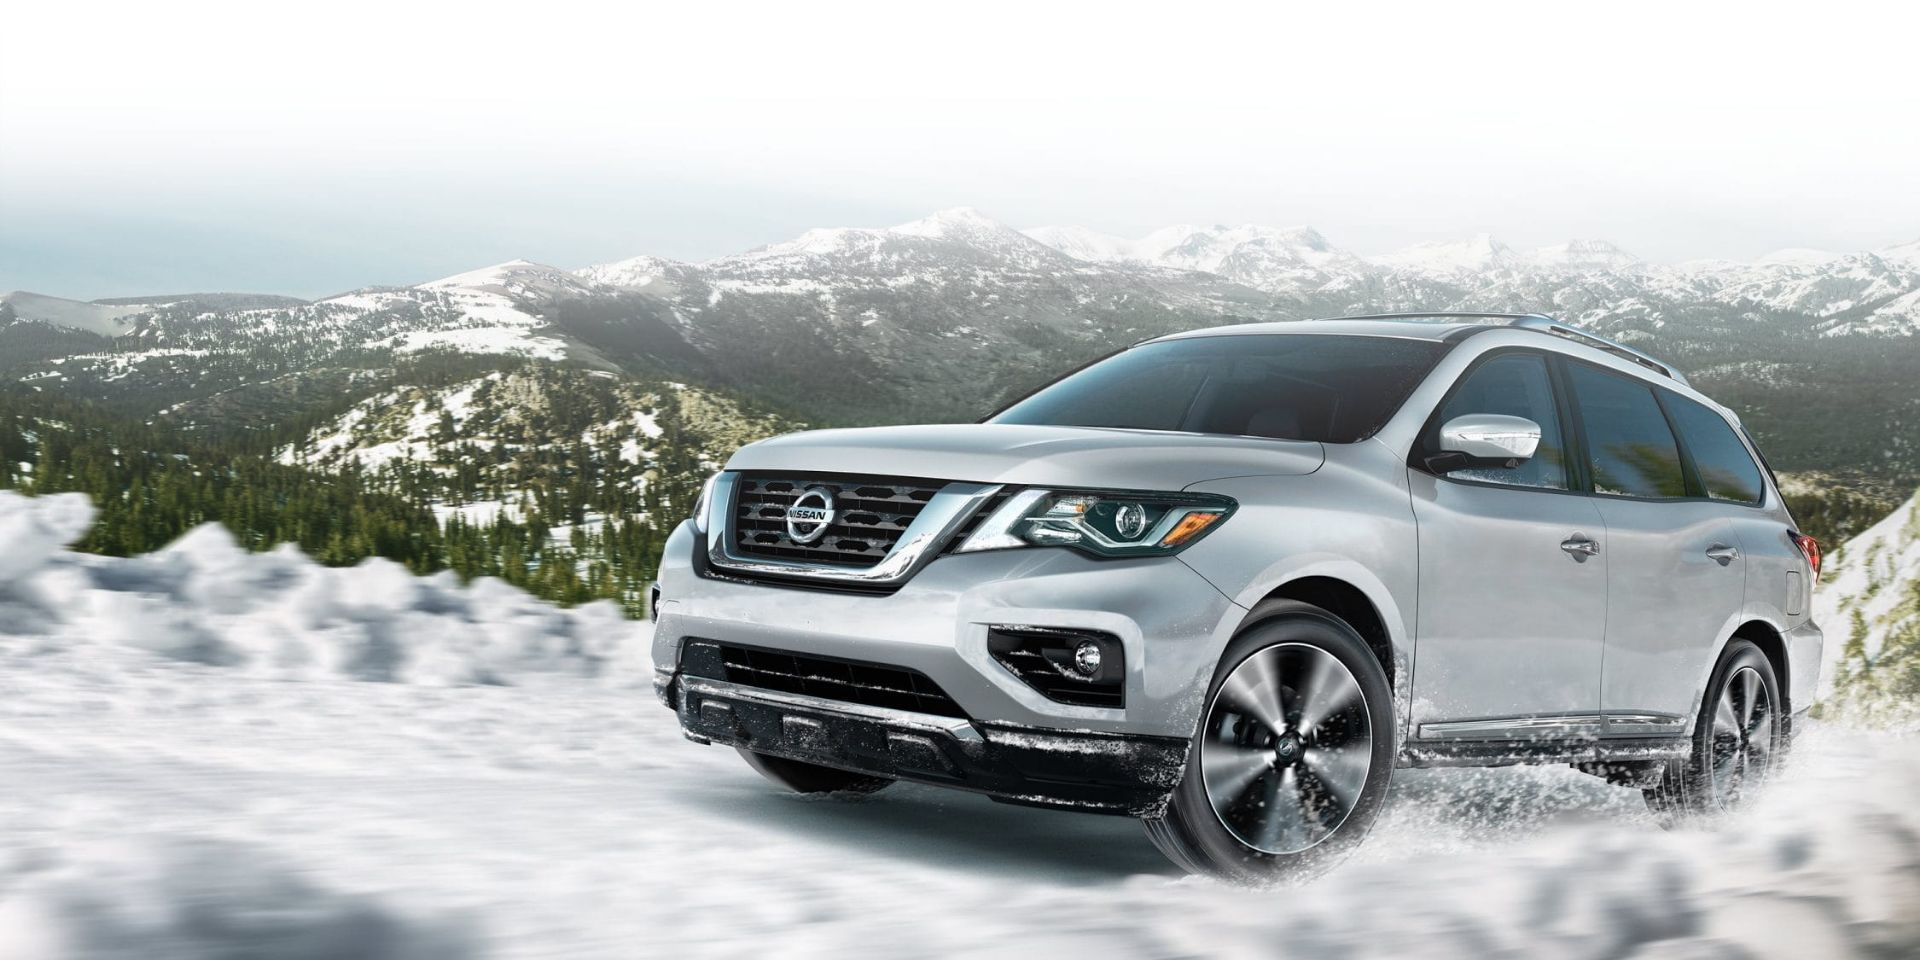 The 2019 Nissan Pathfinder